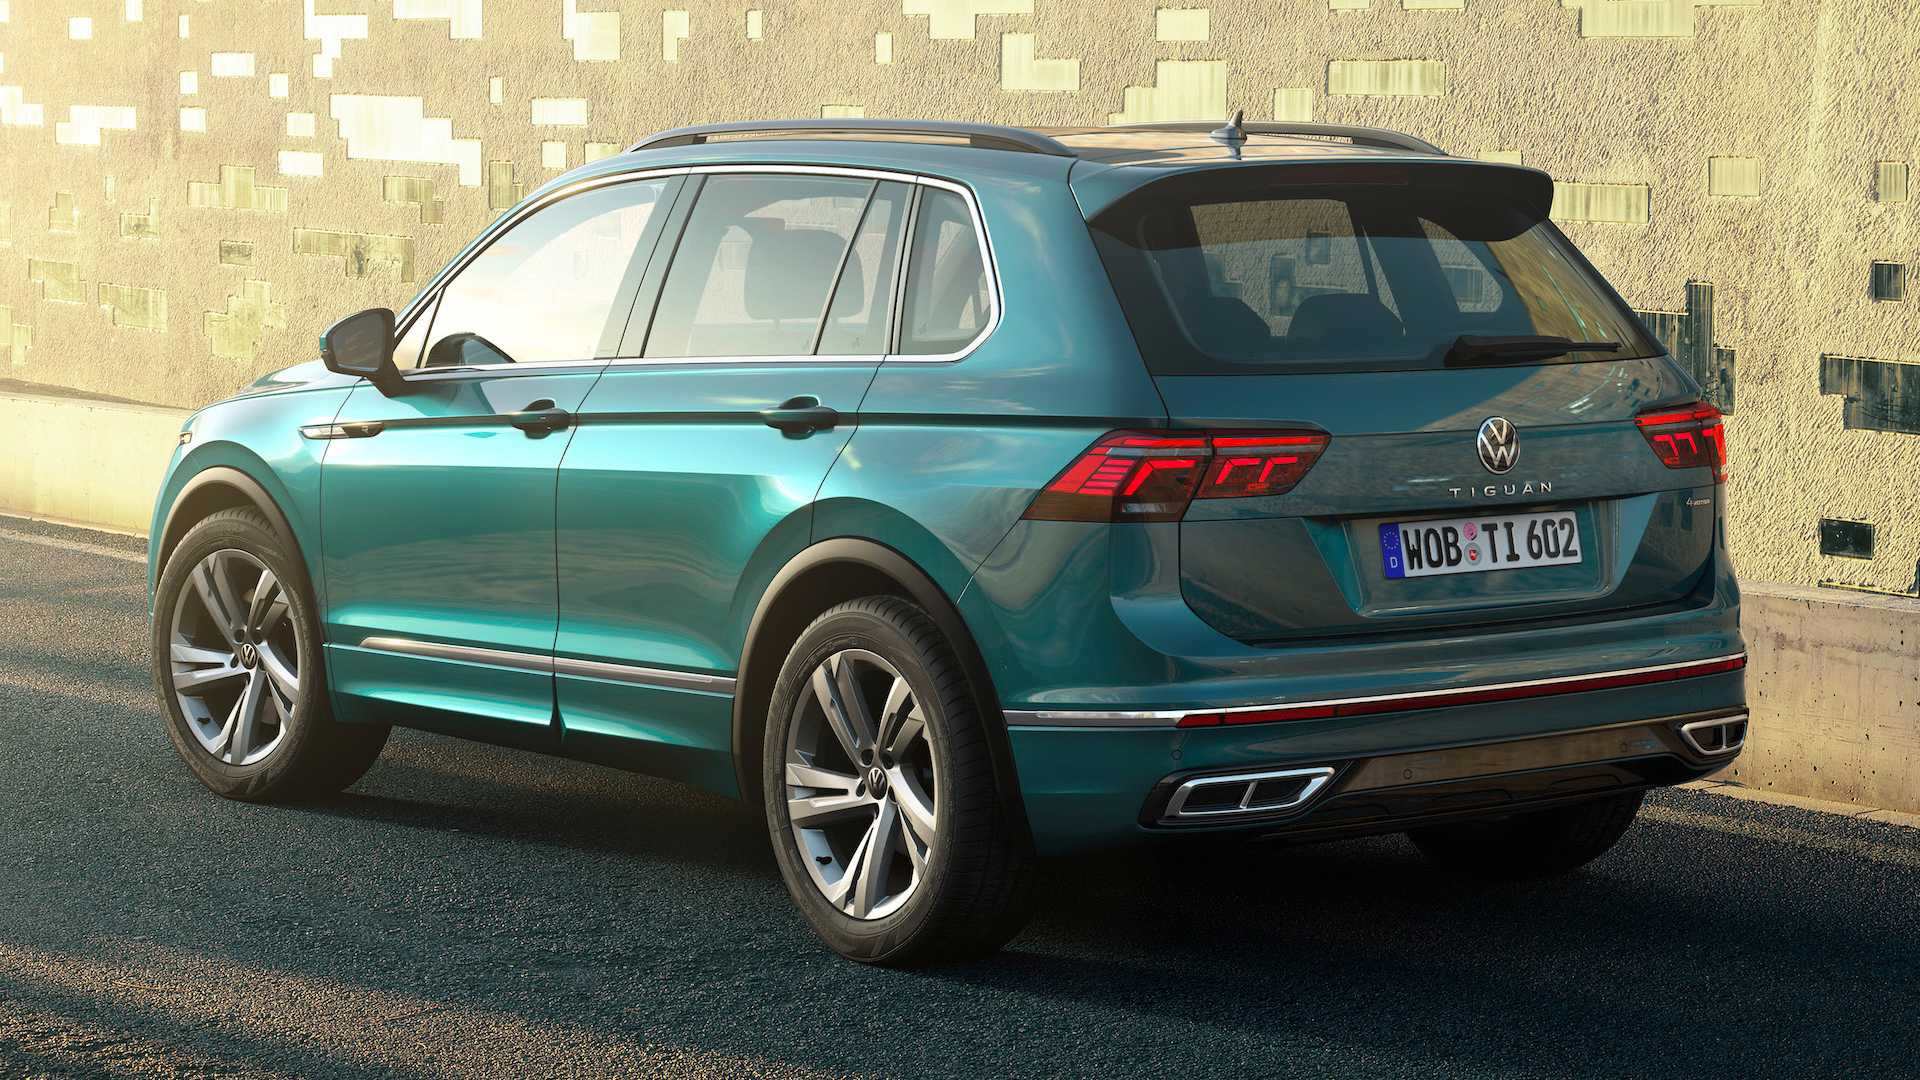 5 Volkswagen Tiguan Debuts With Familial Facelift, More Safety Tech